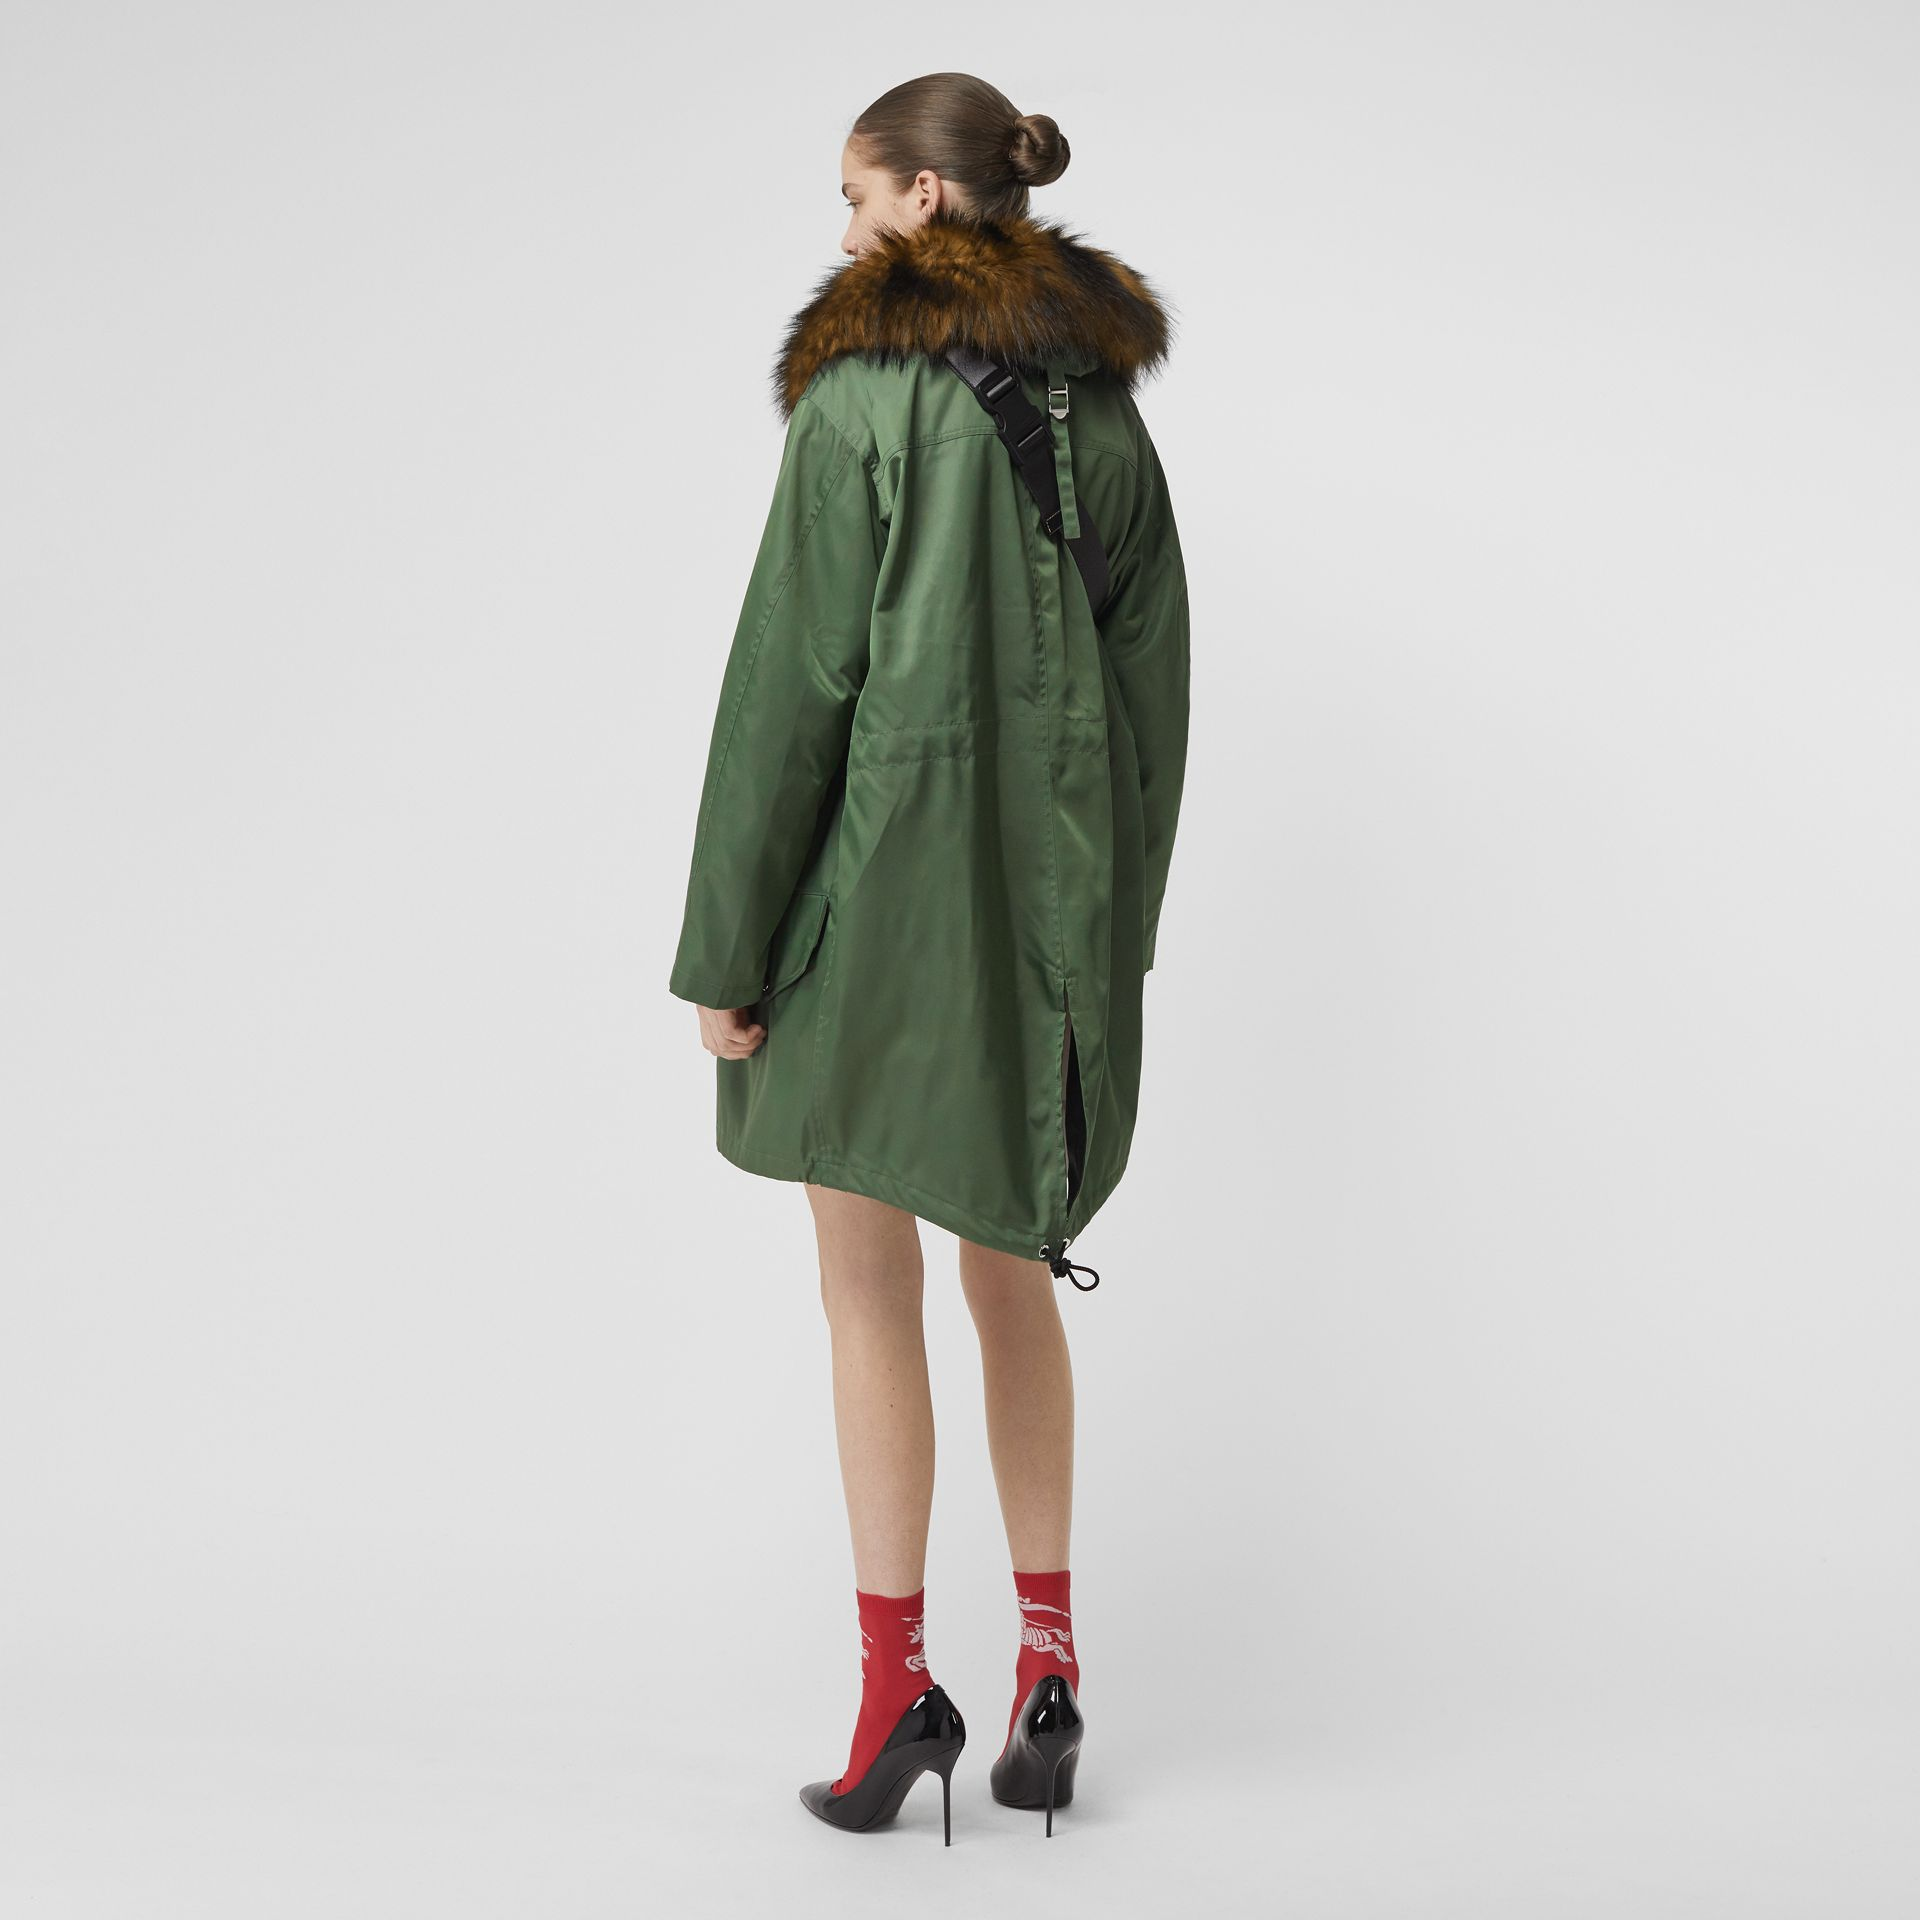 bd8381b6850 Detachable Faux Fur Trim Hood Parka in Grass Green - Women   Burberry  United States -